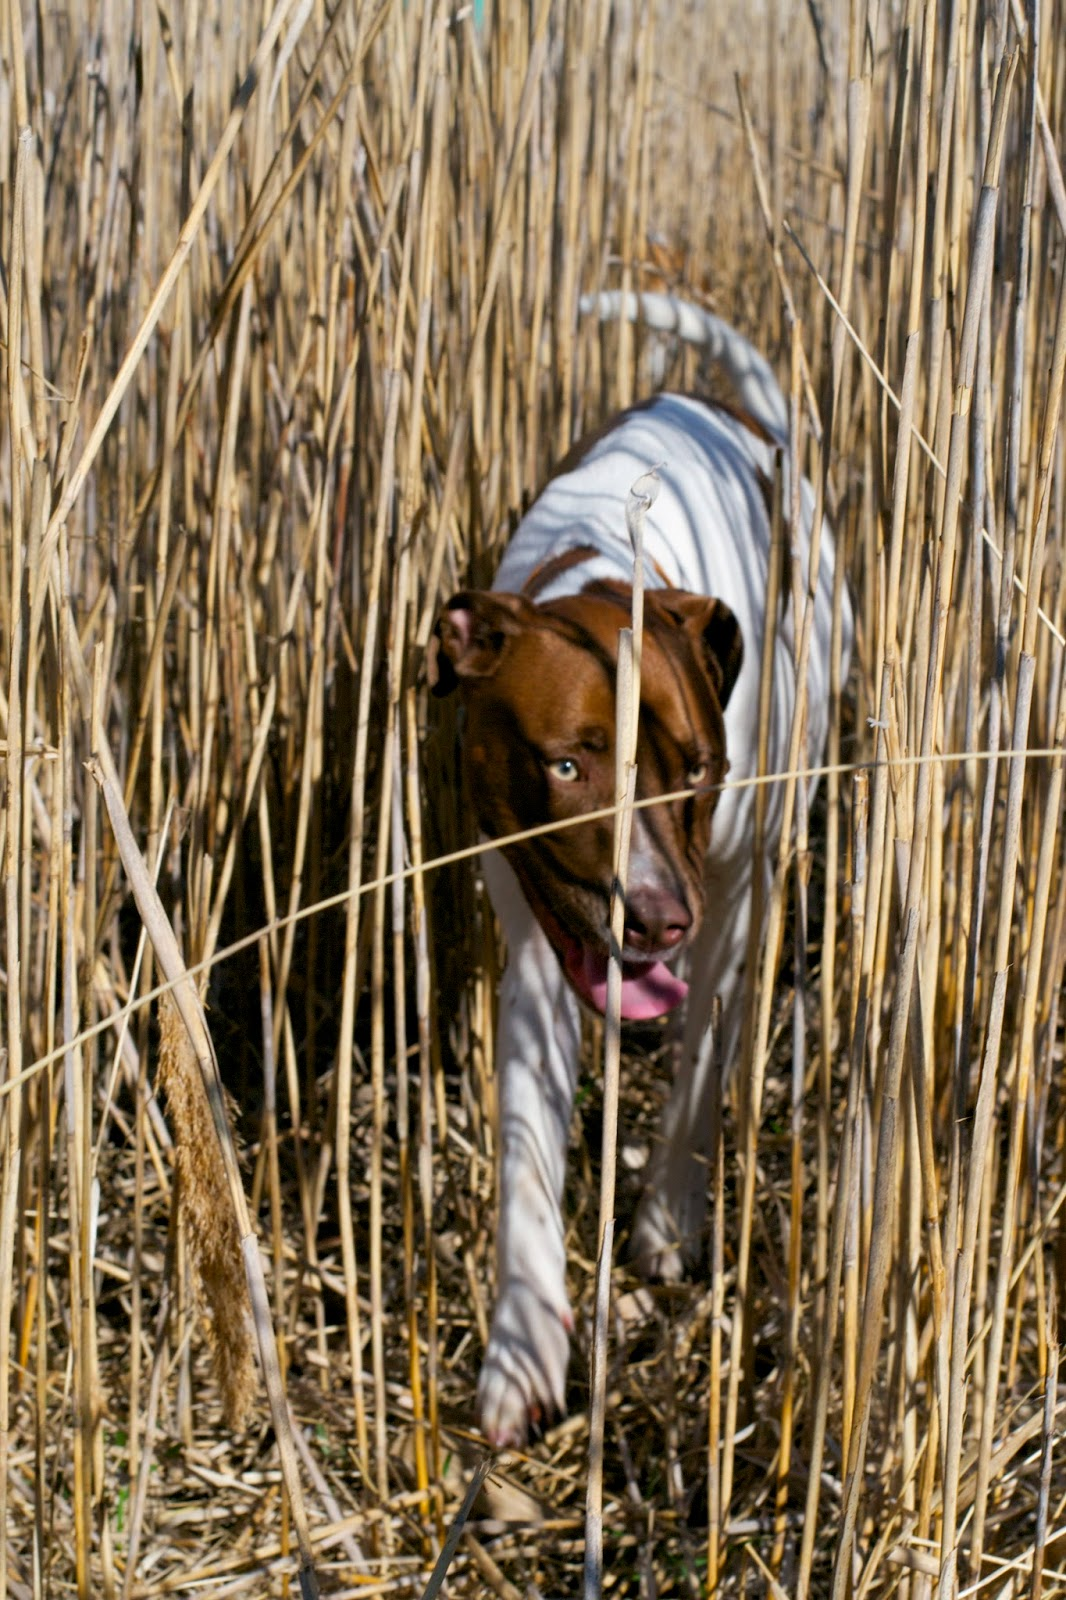 Bessie Mu-dog emerging from exploring the tall beach grass.